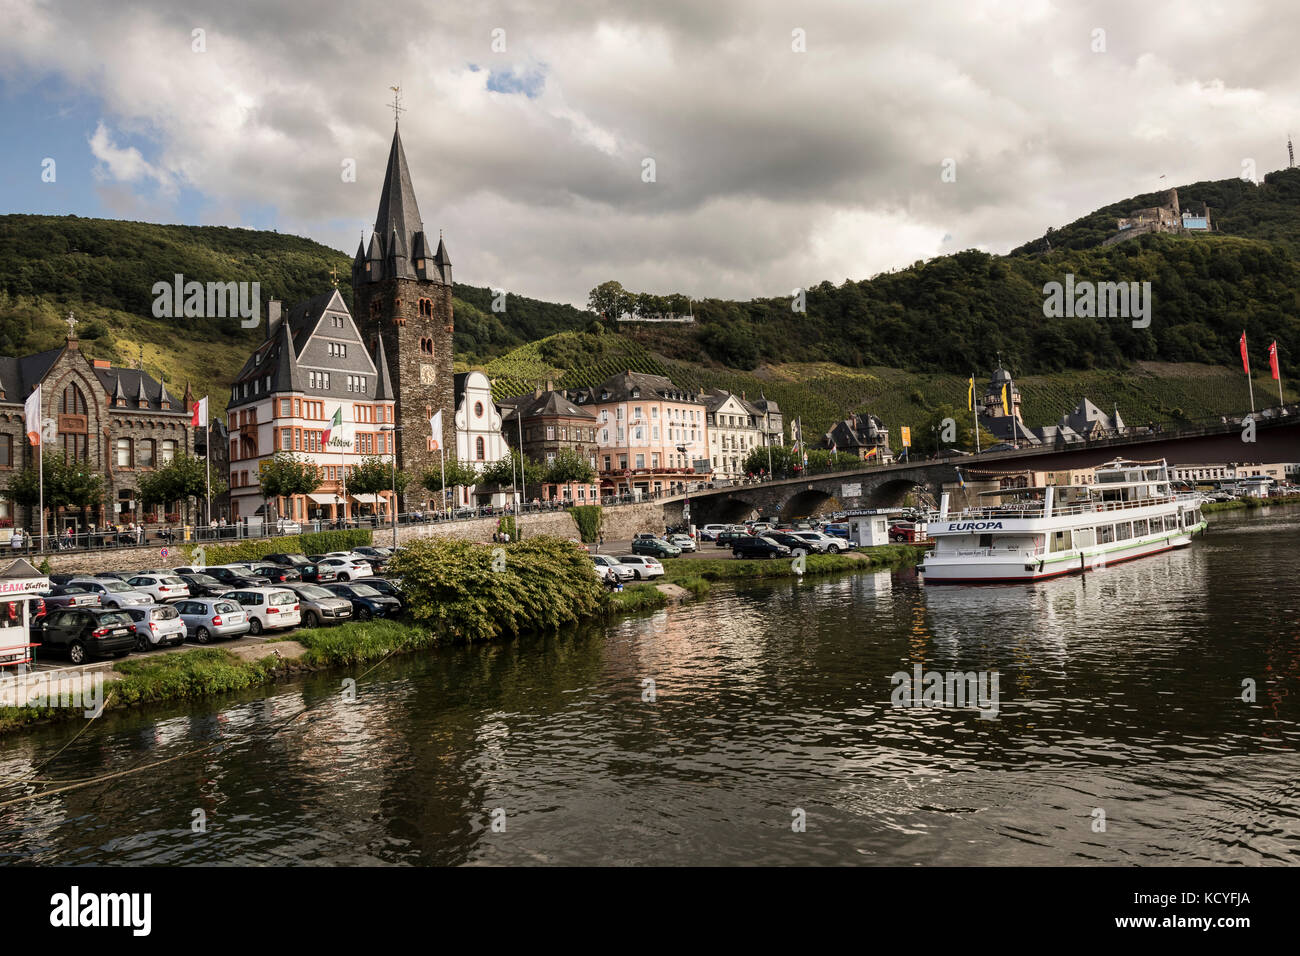 The town of Bernkastel-Kues, in the Mosel Valley, Germany. Photographed from the river boat. Showing the river cruiser - Stock Image